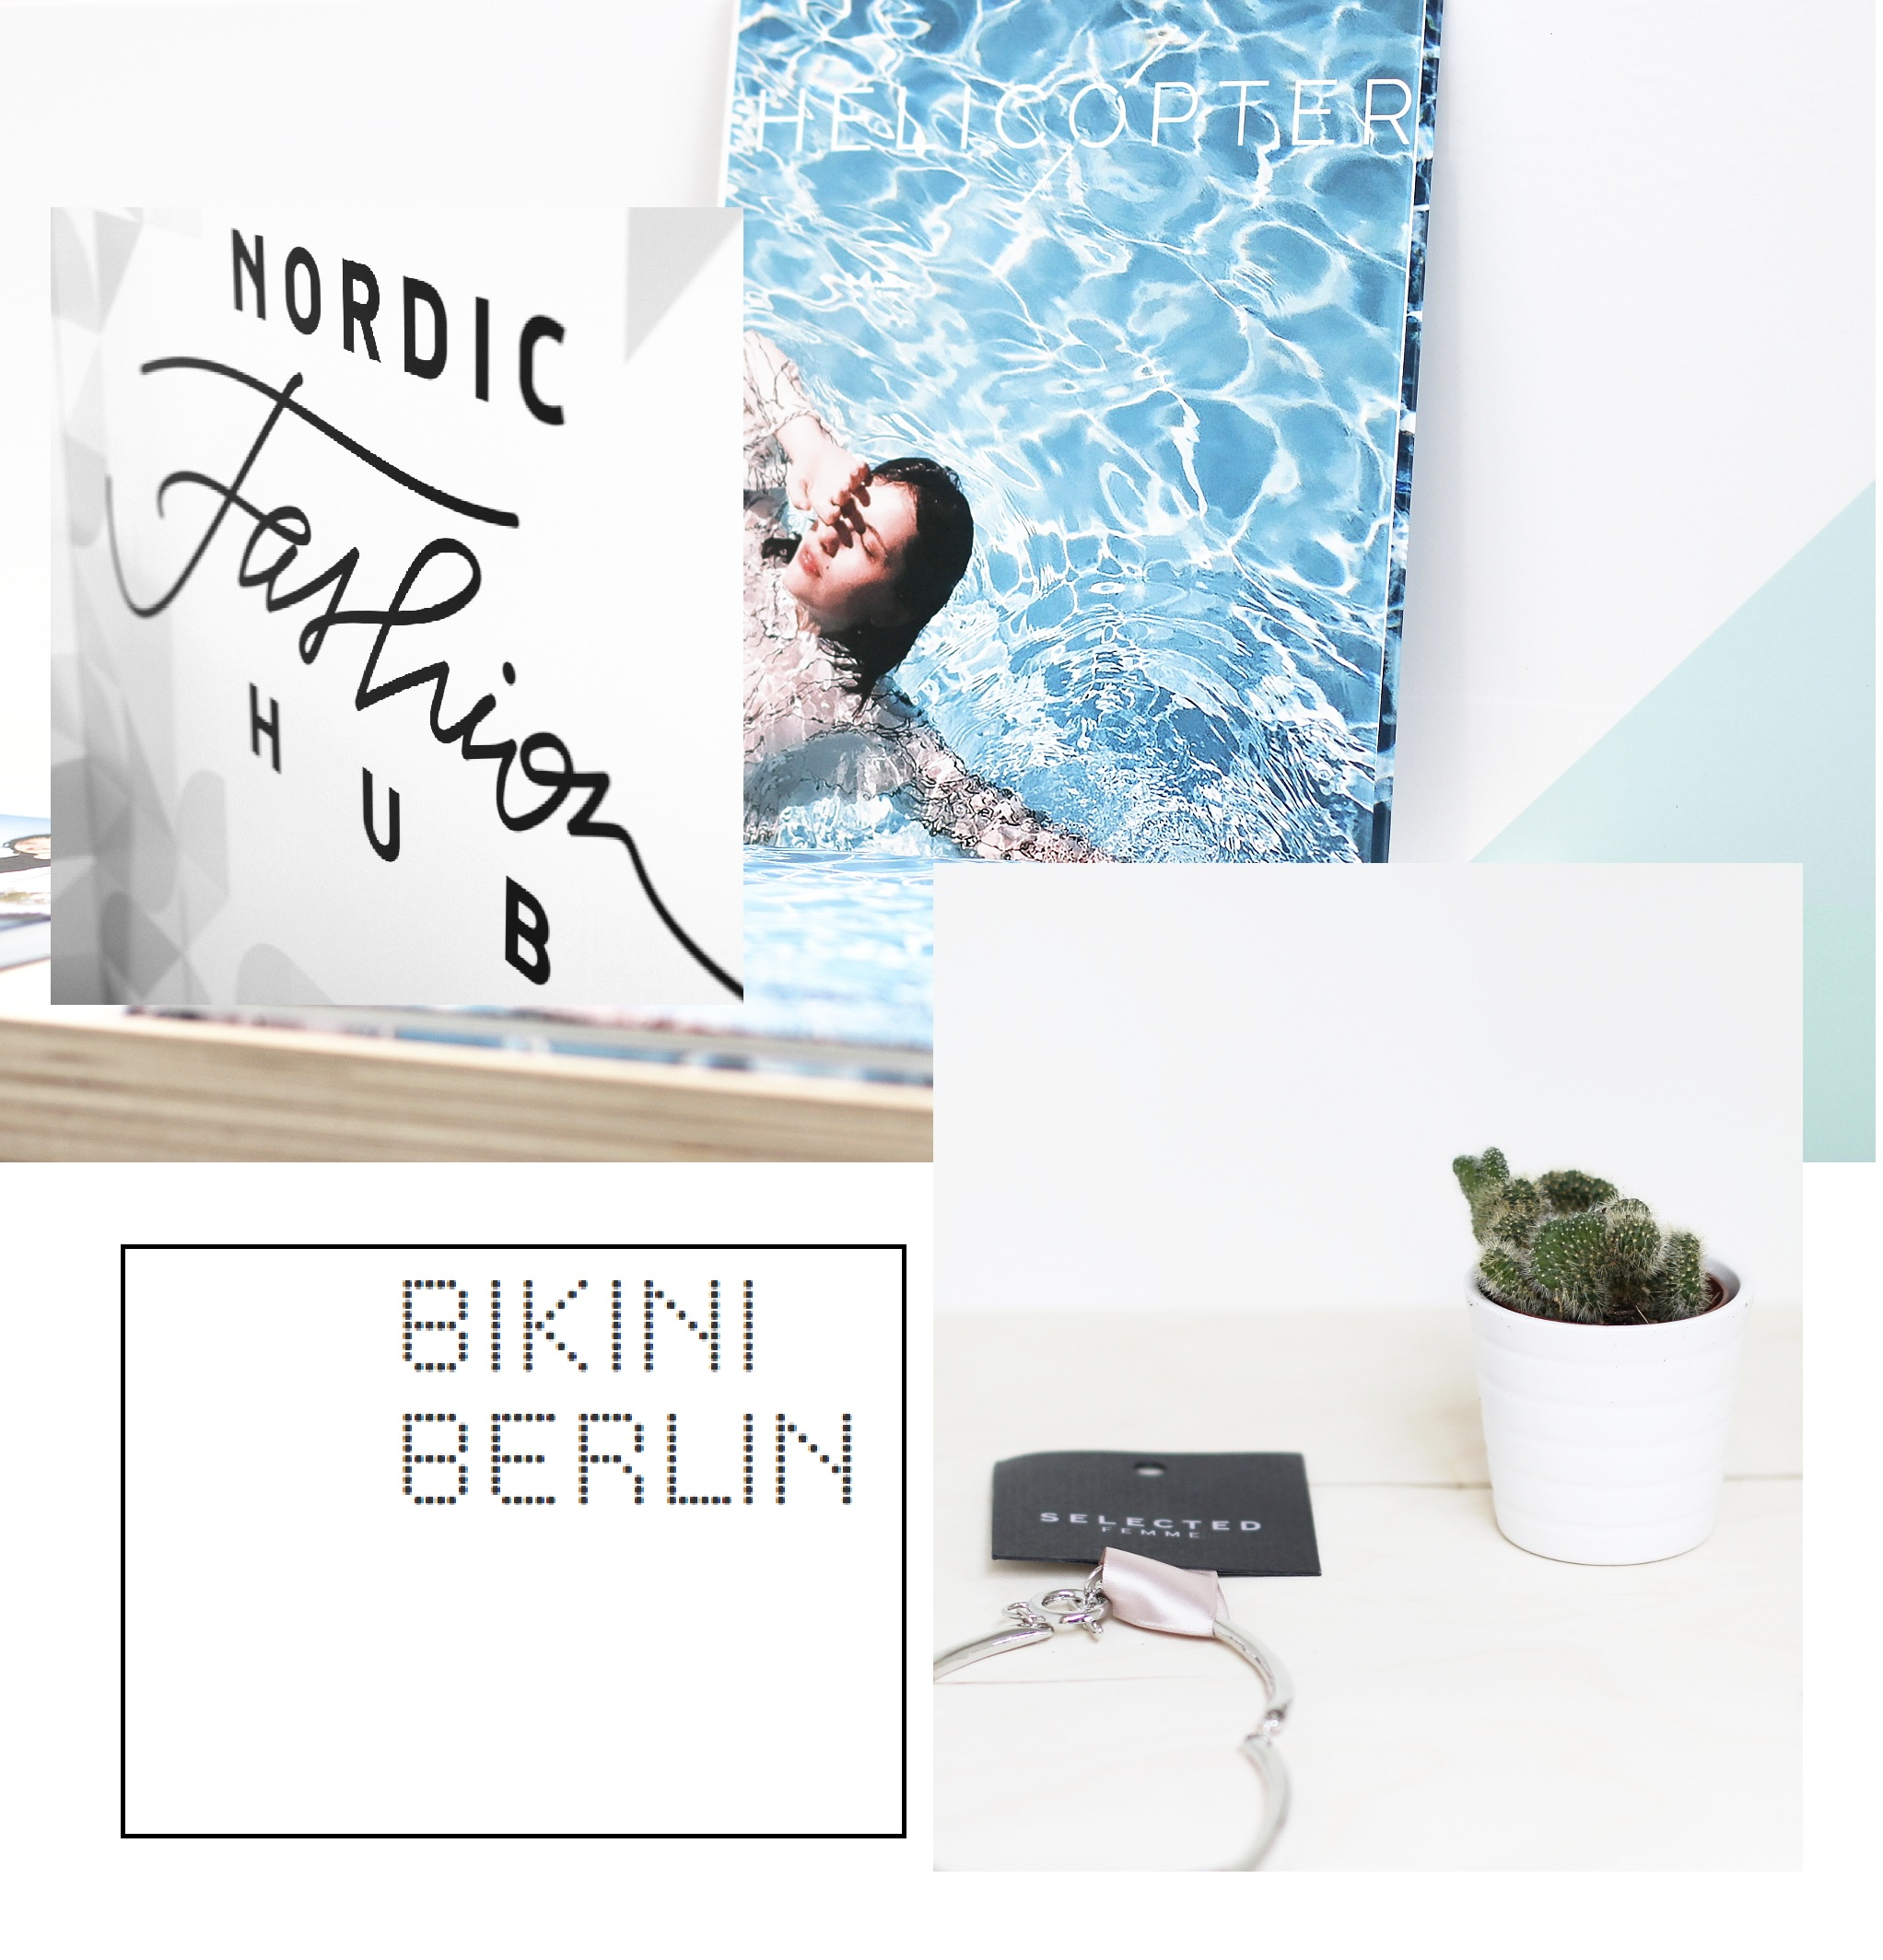 Bikini Berlin Nordic Fashion Hub